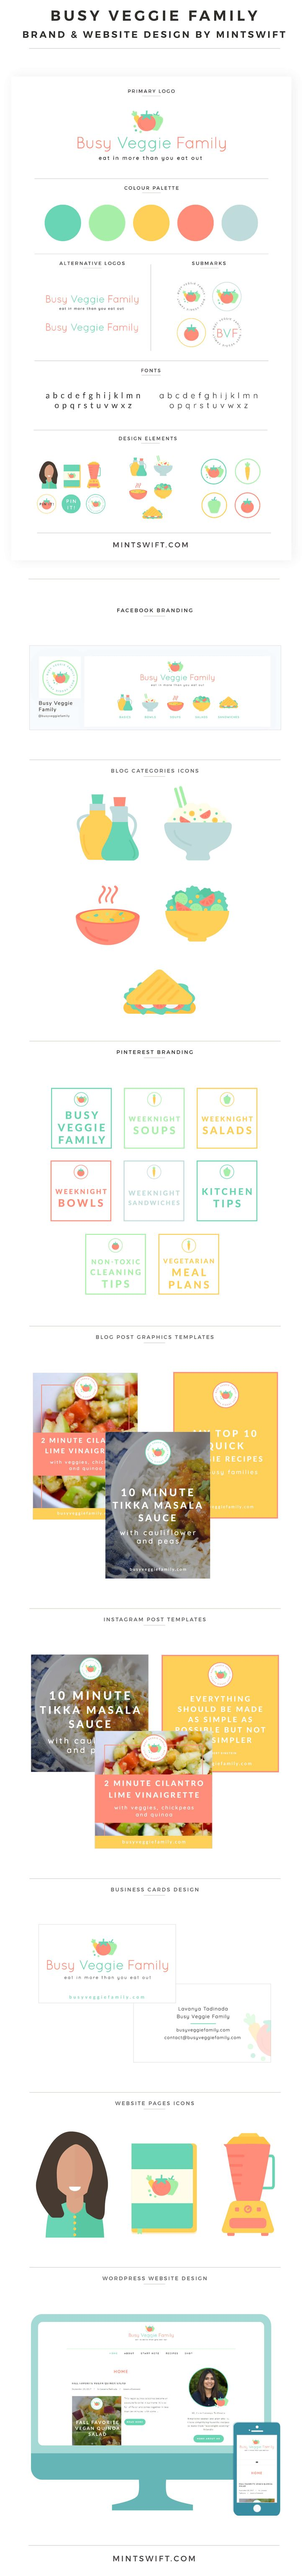 Brand & Website Design for Busy Veggie Family | Brand & Website Design Package | WordPress Website Design | Brand Design | Brand Identity | Brand Collaterals Design | Website Design | Pinterest Branding | Logo Design | Facebook Branding | Social Media Branding | Brand Board | Brand Style Guide | Blog Categories Icons | Blog post graphics templates | Instagram Post Templates | Illustration design | Business cards design | MintSwift | MintSwift Portfolio | MintSwift Design | Adrianna Glowacka